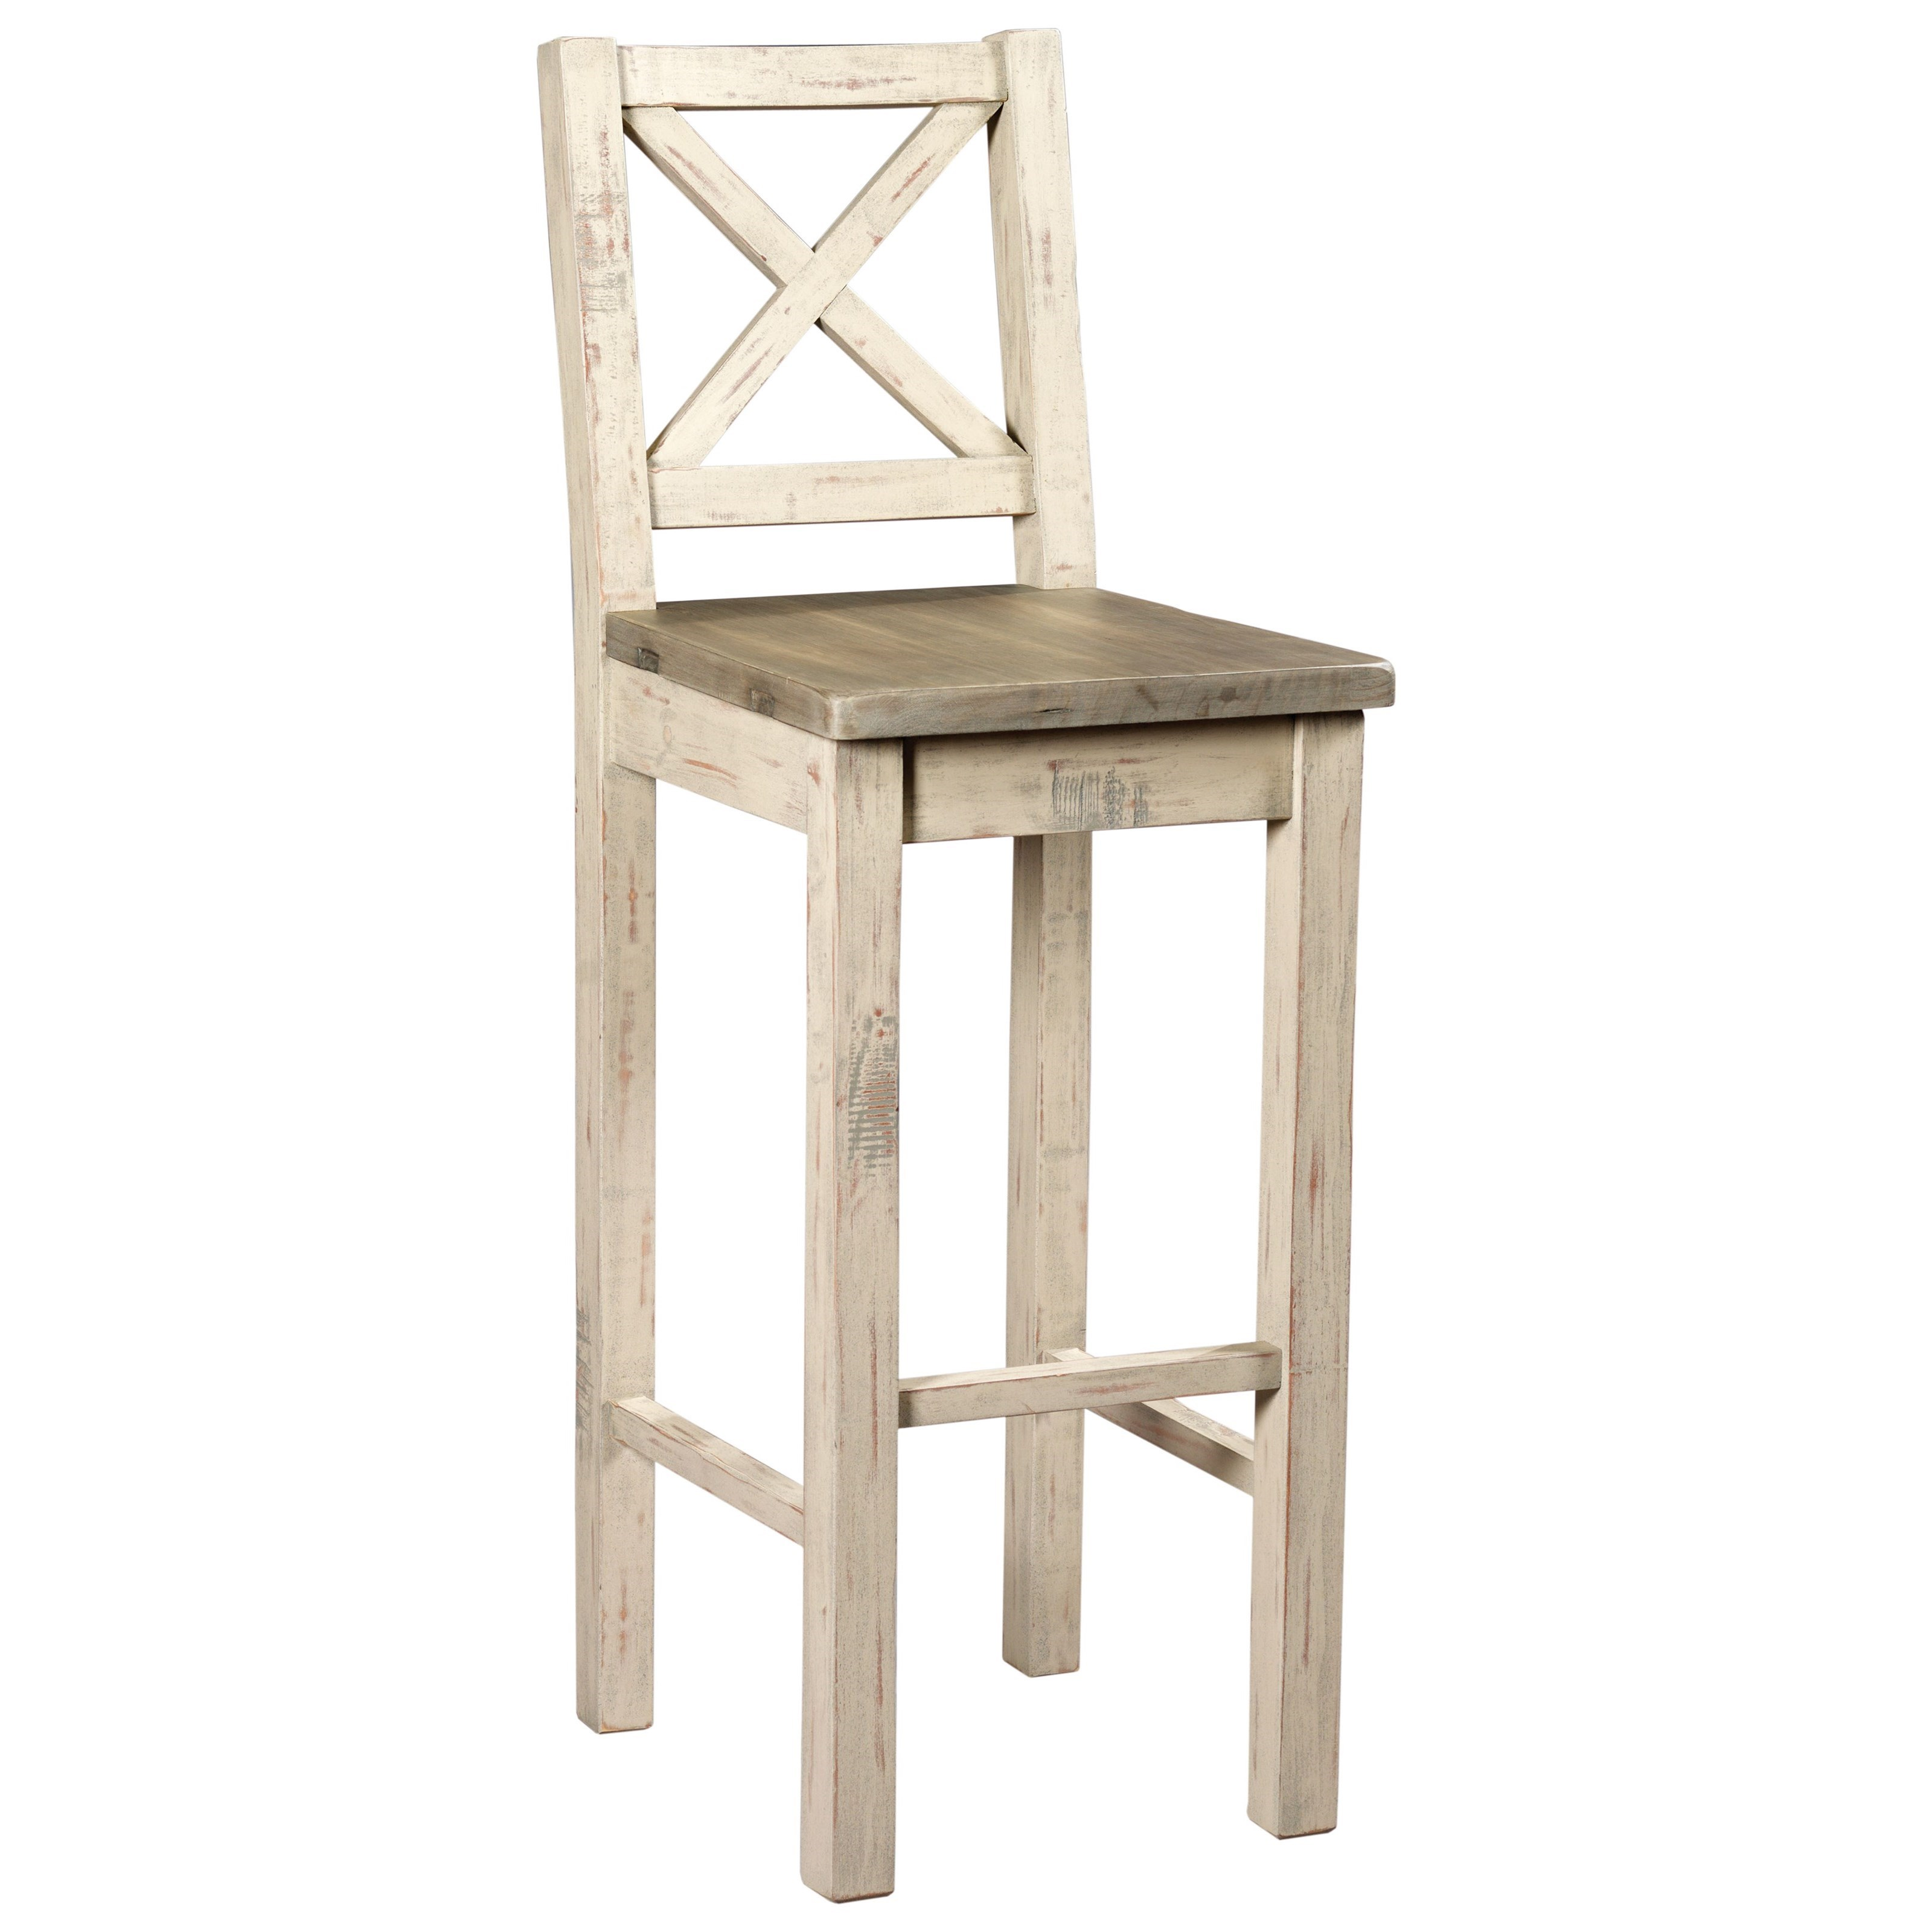 Reclamation Place                                  Barstool by Hammary at Mueller Furniture